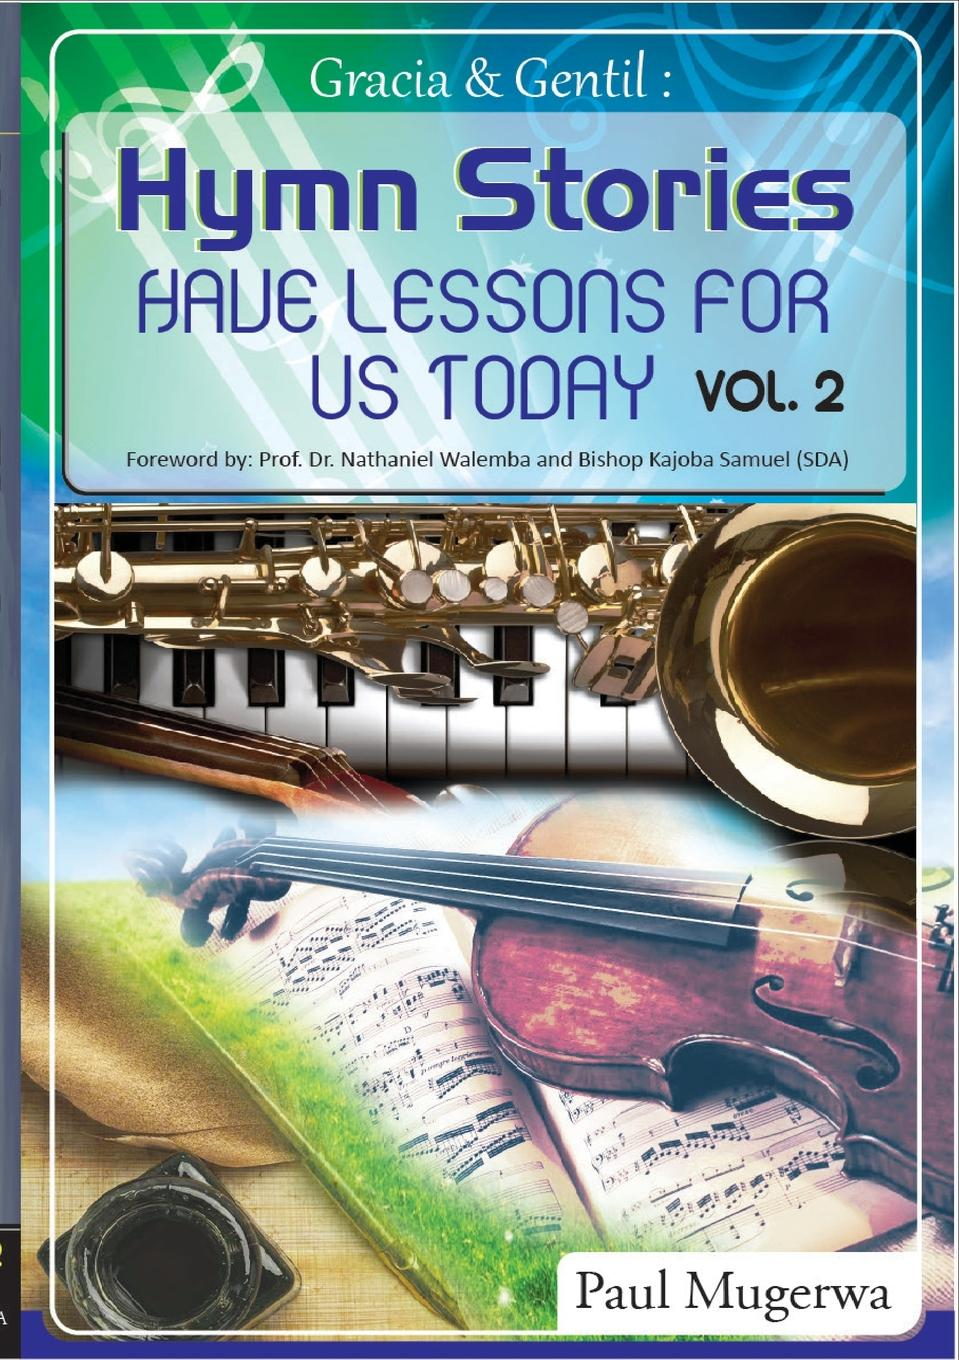 Mugerwa Paul Gracia and Gentil Vol 2. Hymn Stories For Our Contemporary Lifestyles c nielsen hymns and sacred songs